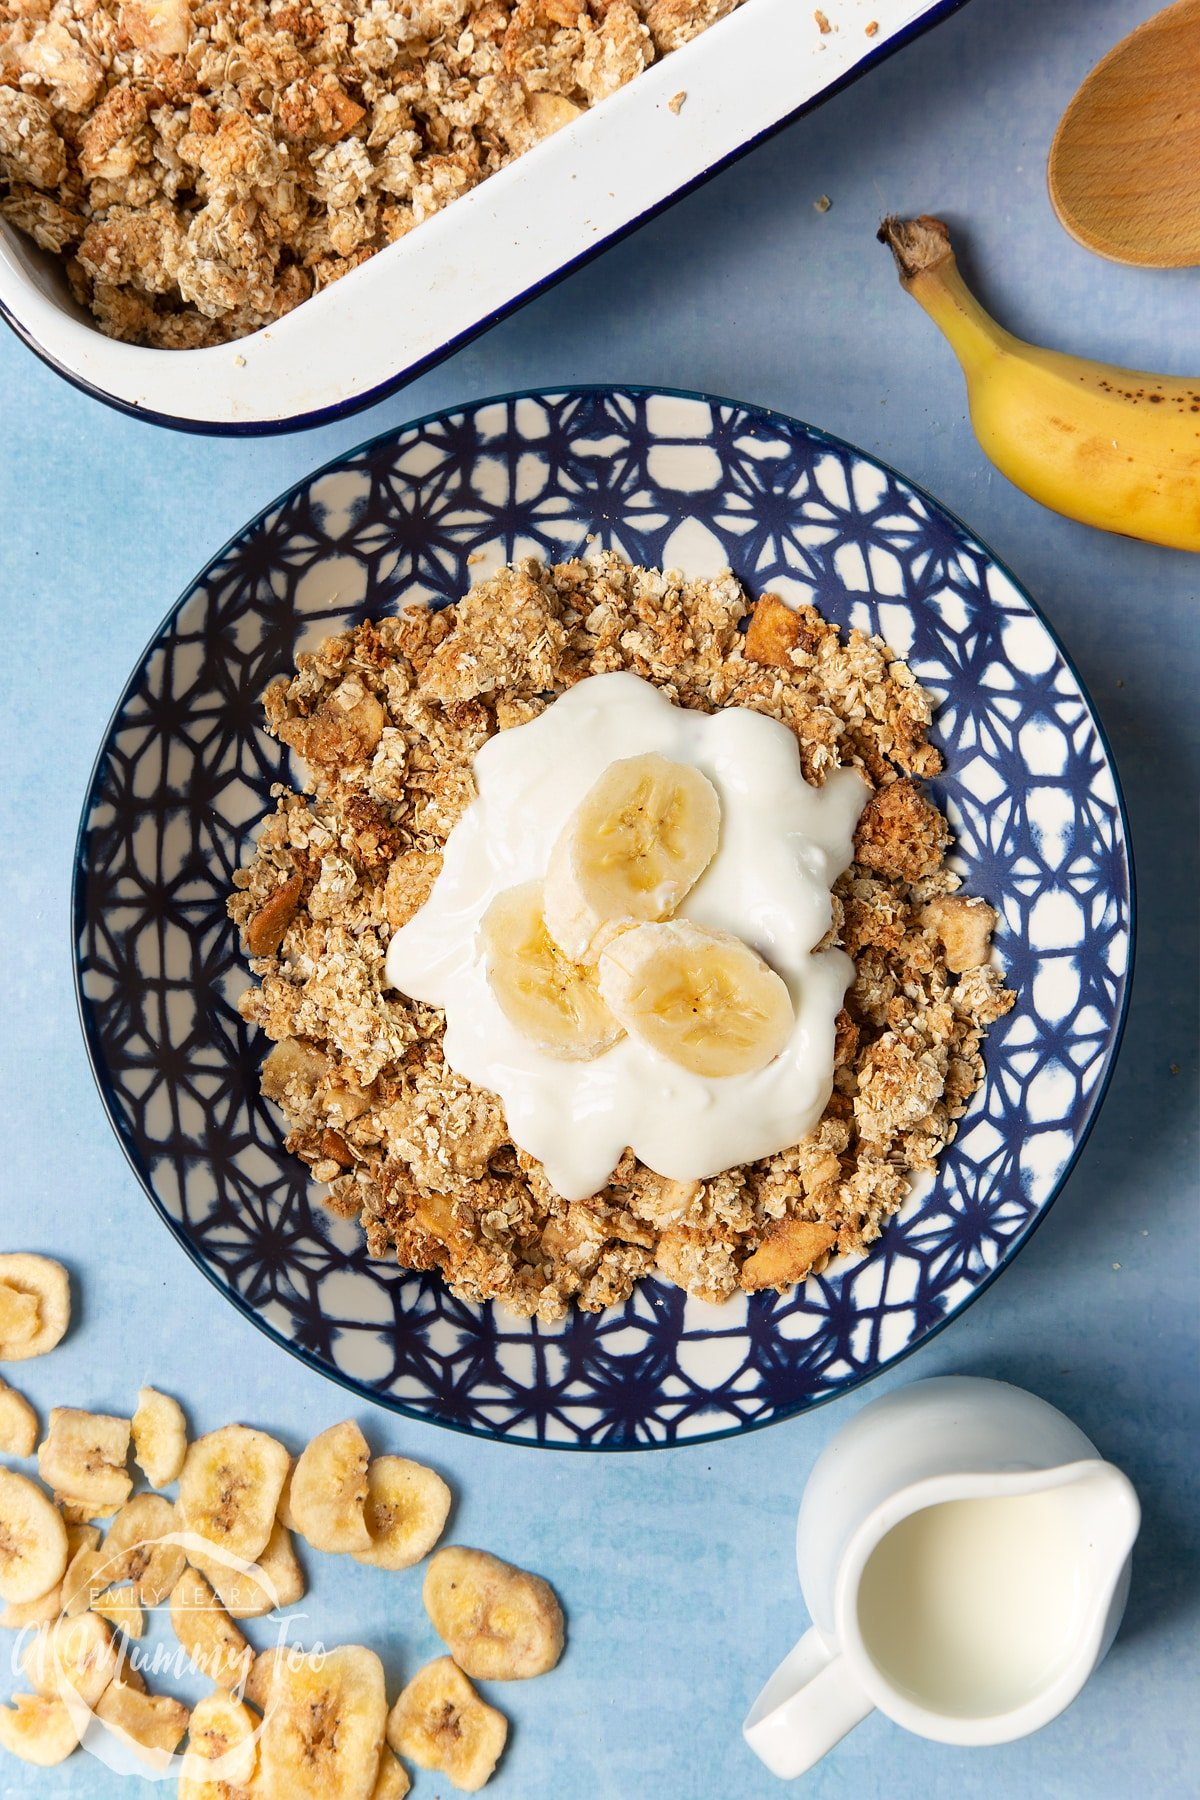 Banana coconut granola in a bowl, topped with yogurt and fresh banana slices. Ingredients surround the bowl.